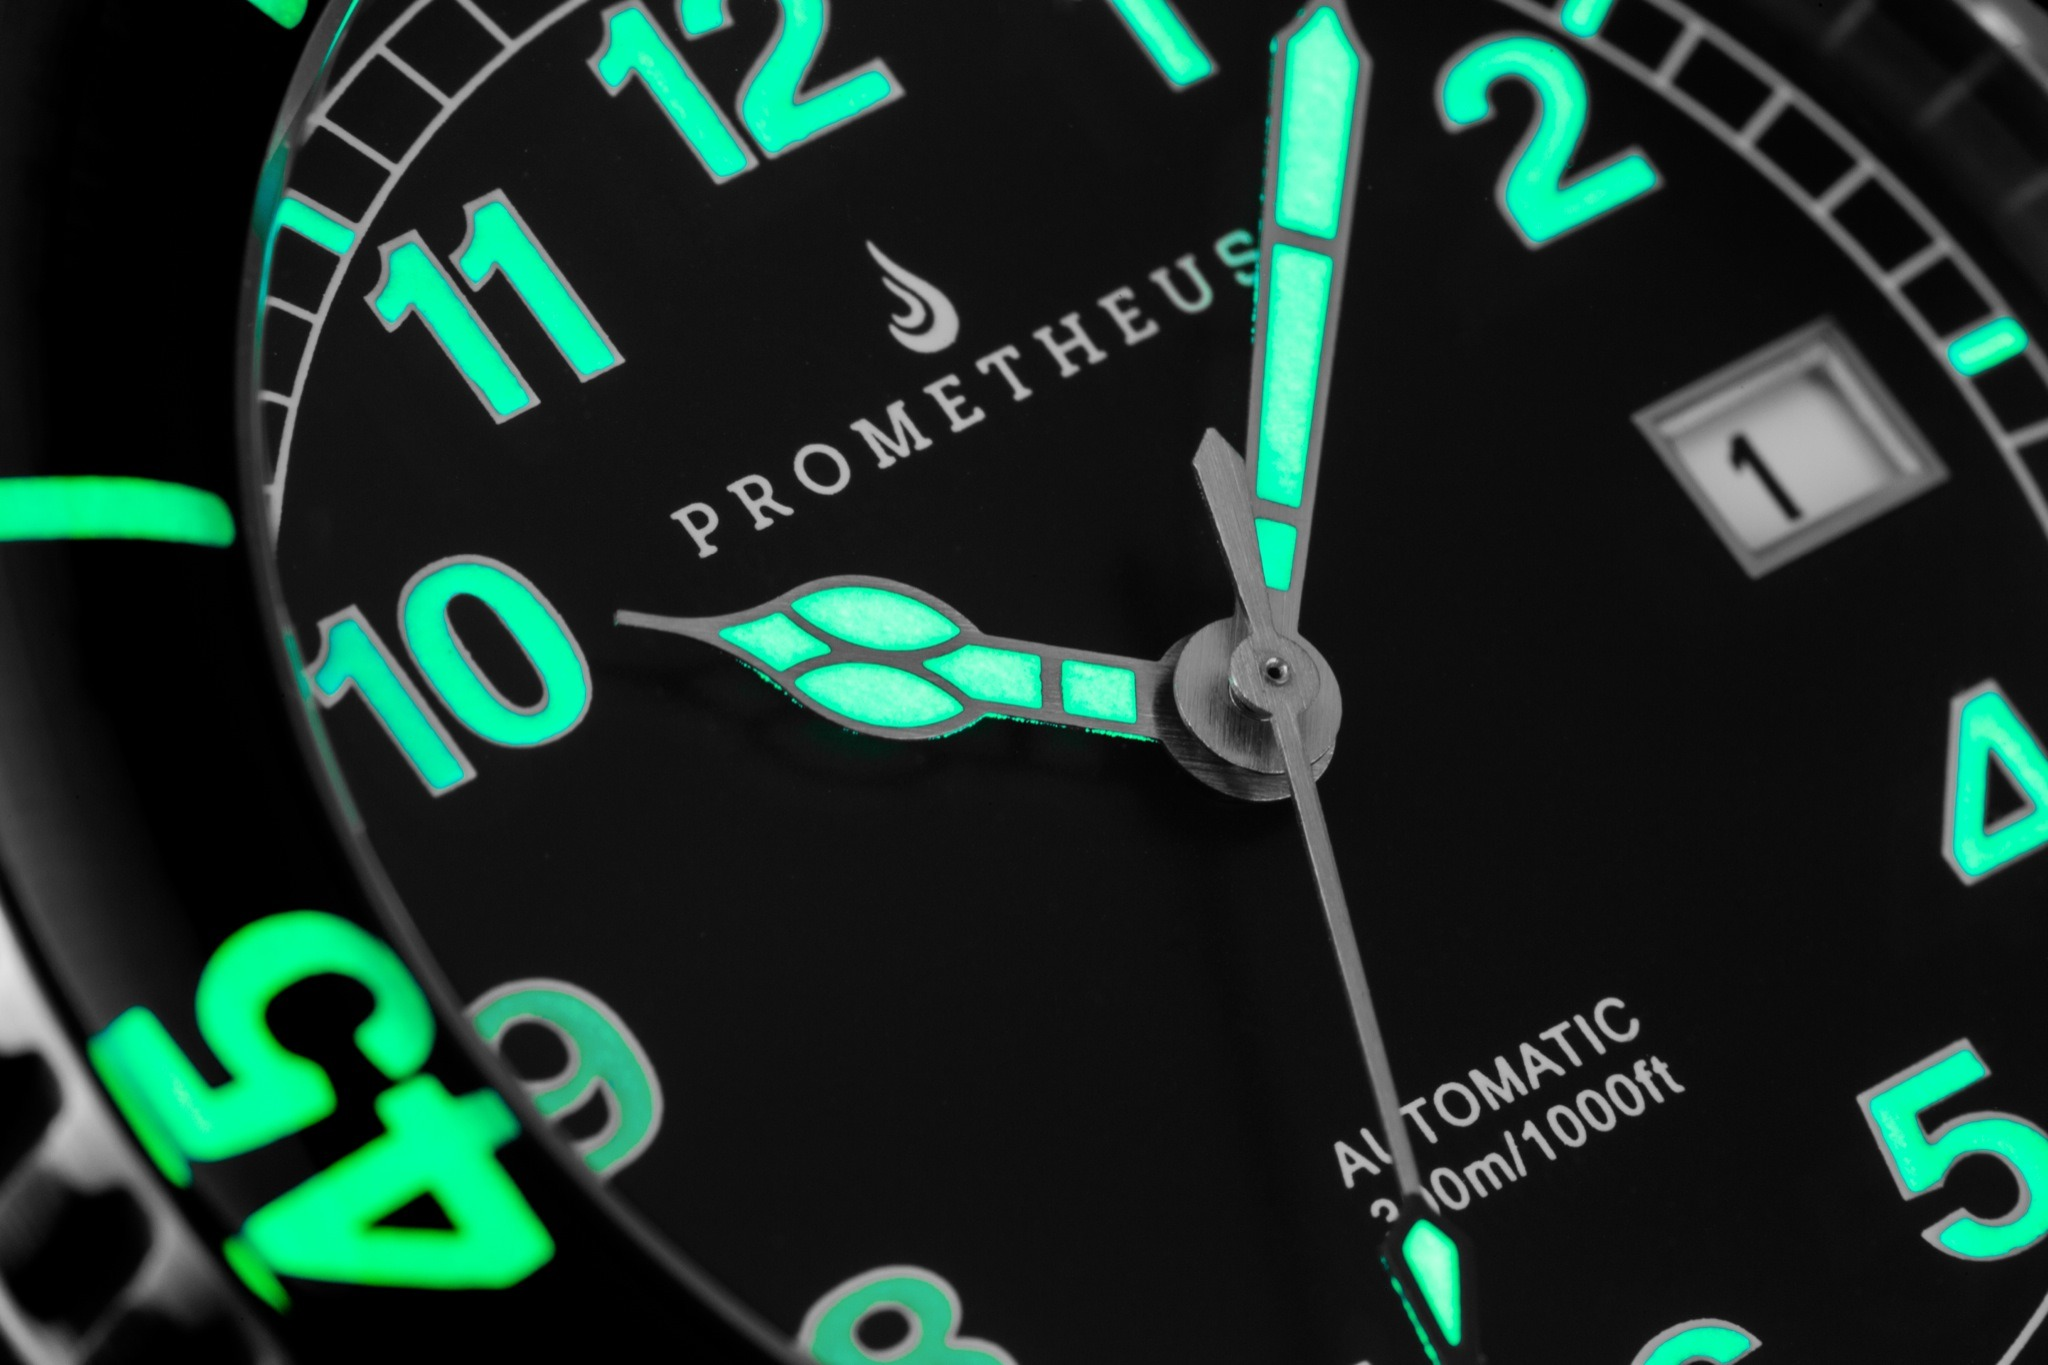 Prometheus Sailfish 300m Automatic Diver Watch Black Dial Sapphire Bezel Lume Shot